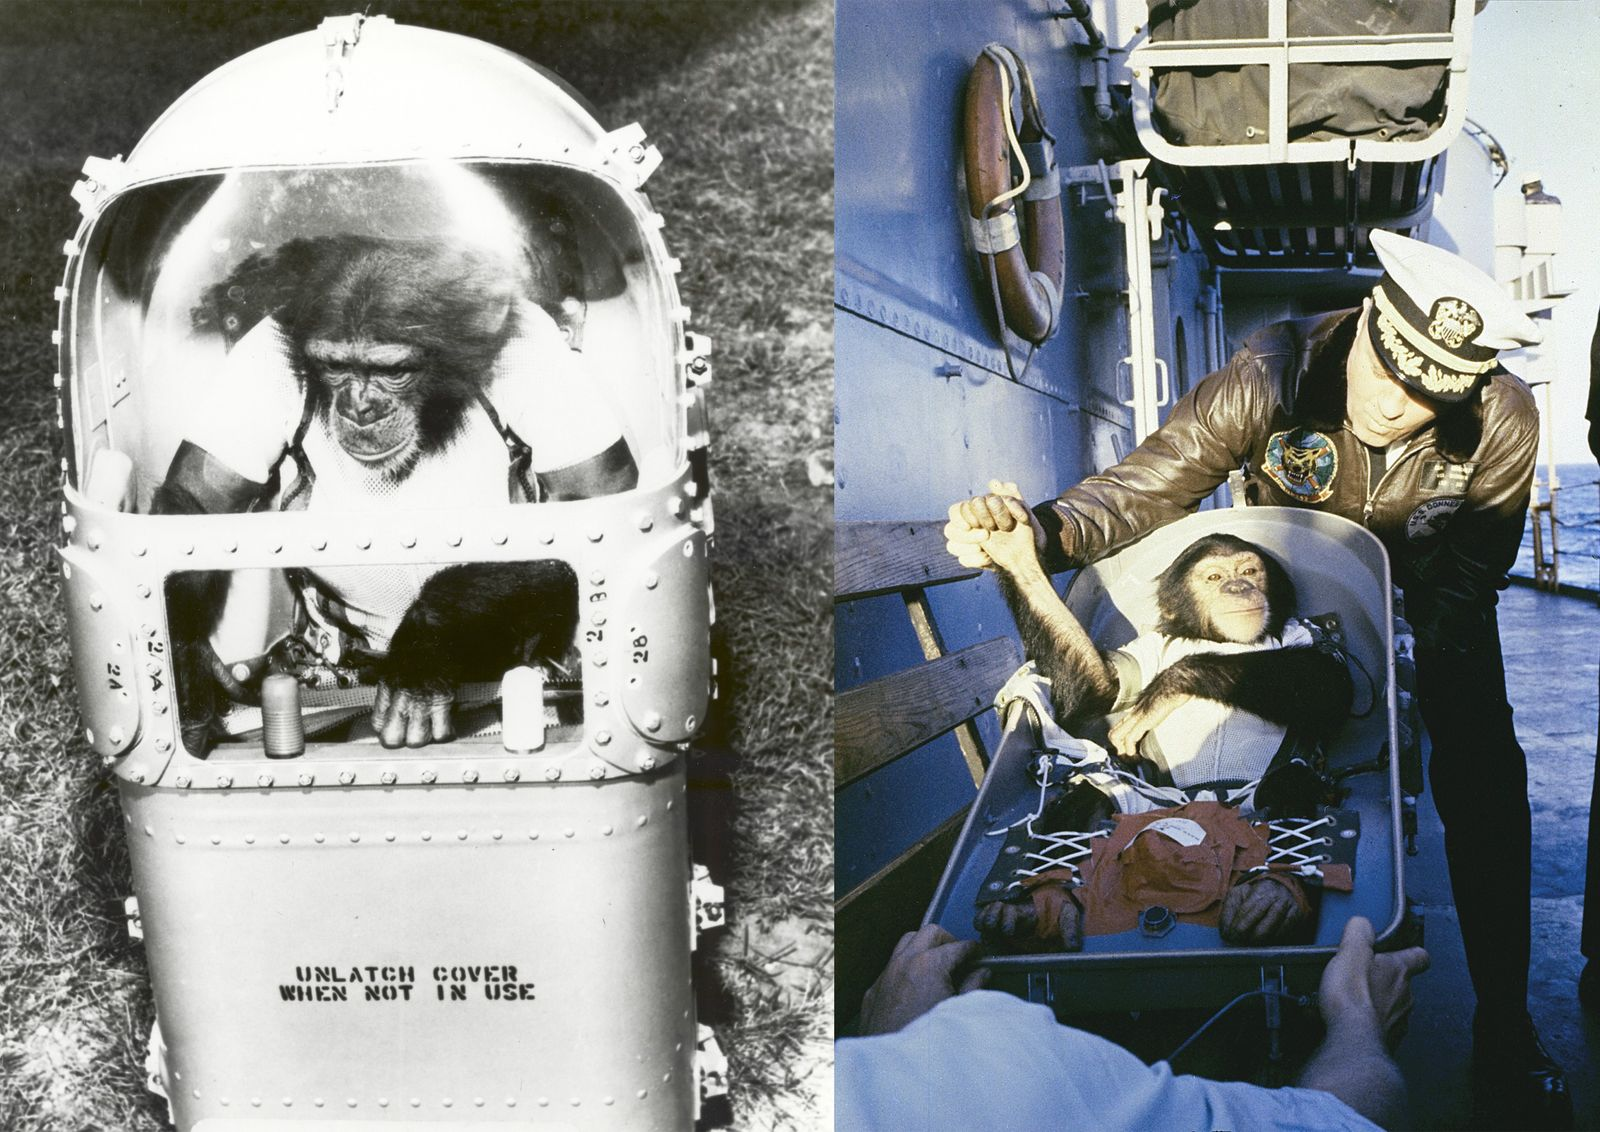 Left: Ham inside his life support capsule. The capsule – an alternative to a spacesuit – ...